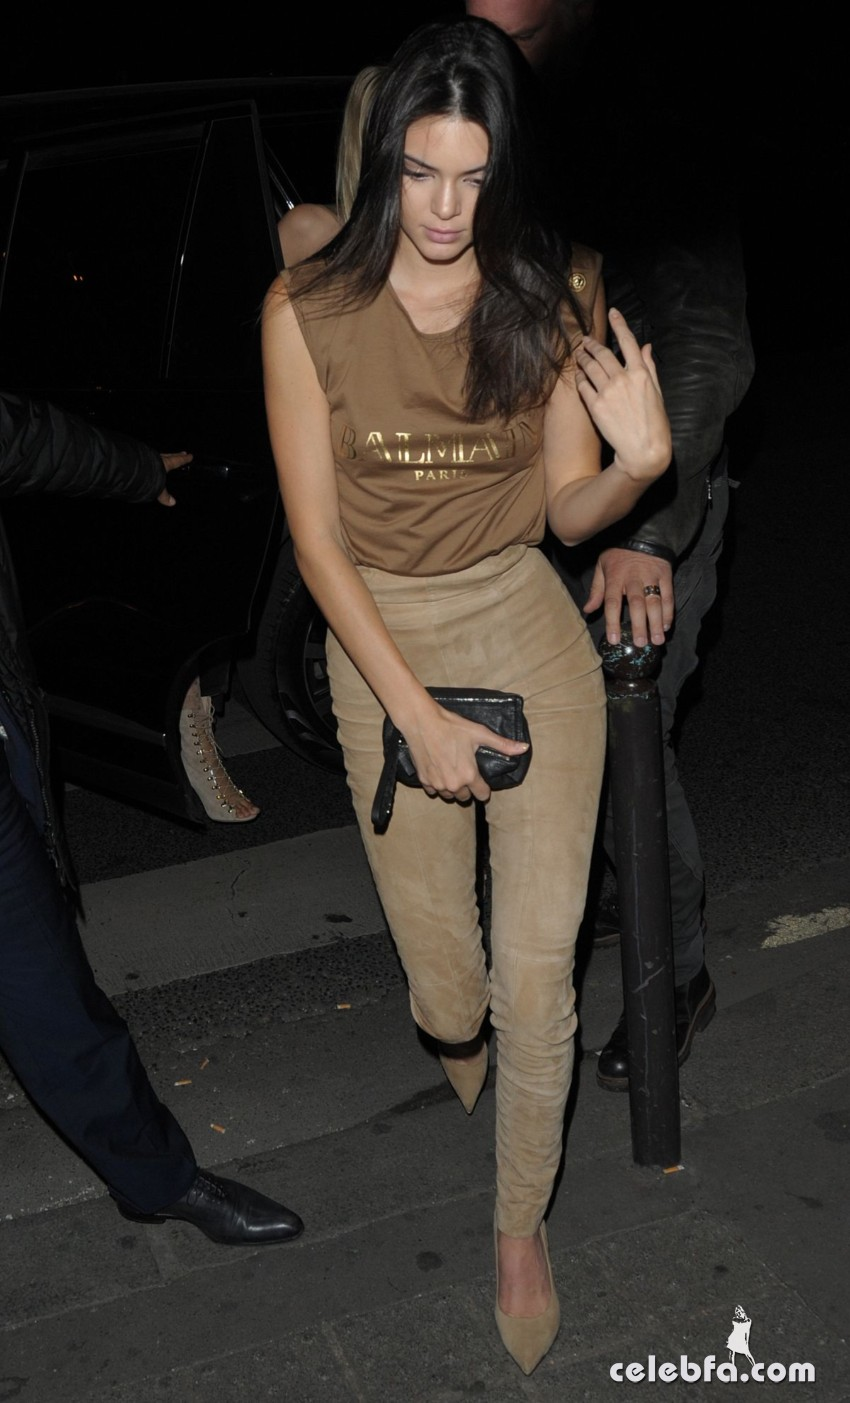 kendall-jenner-at-balmain-fashion-show-after-party-in-paris (4)